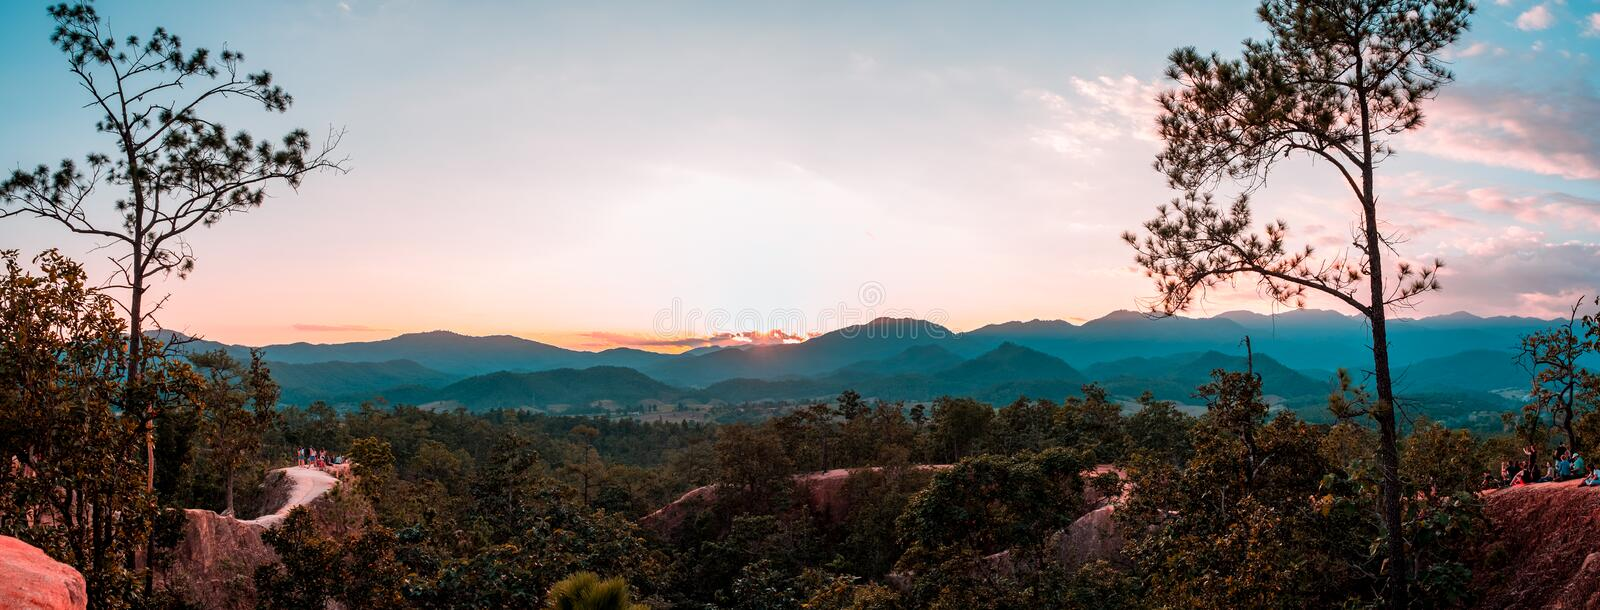 Pai Canyon, Mae Hong Son, Thailand. Sunset scene at Pai Canyon, Mae Hong Son, Thailand. The best sunset place in the city stock image